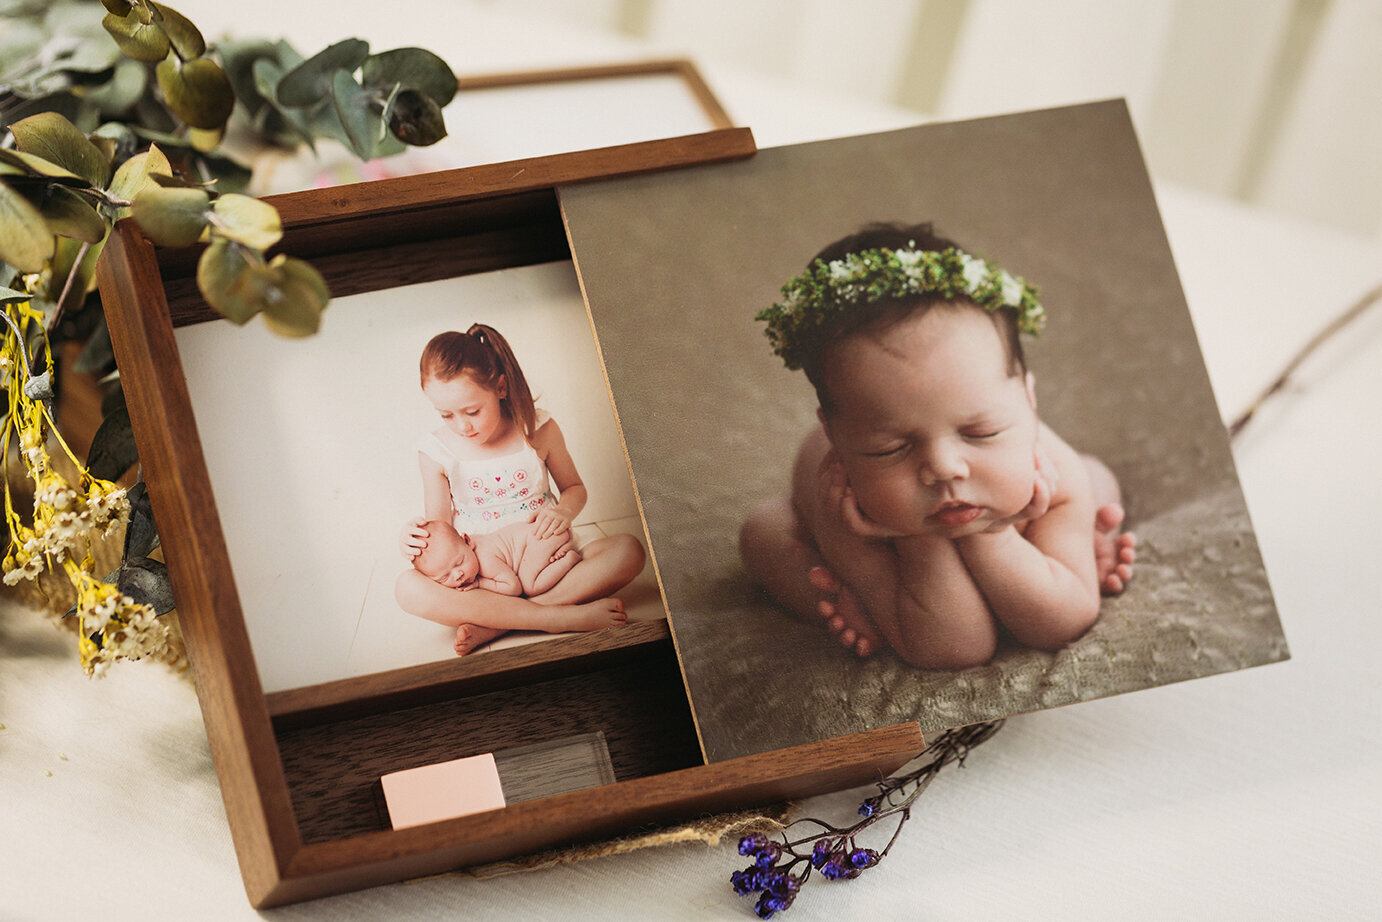 Wooden box set featuring newborn baby, containing prints and USB